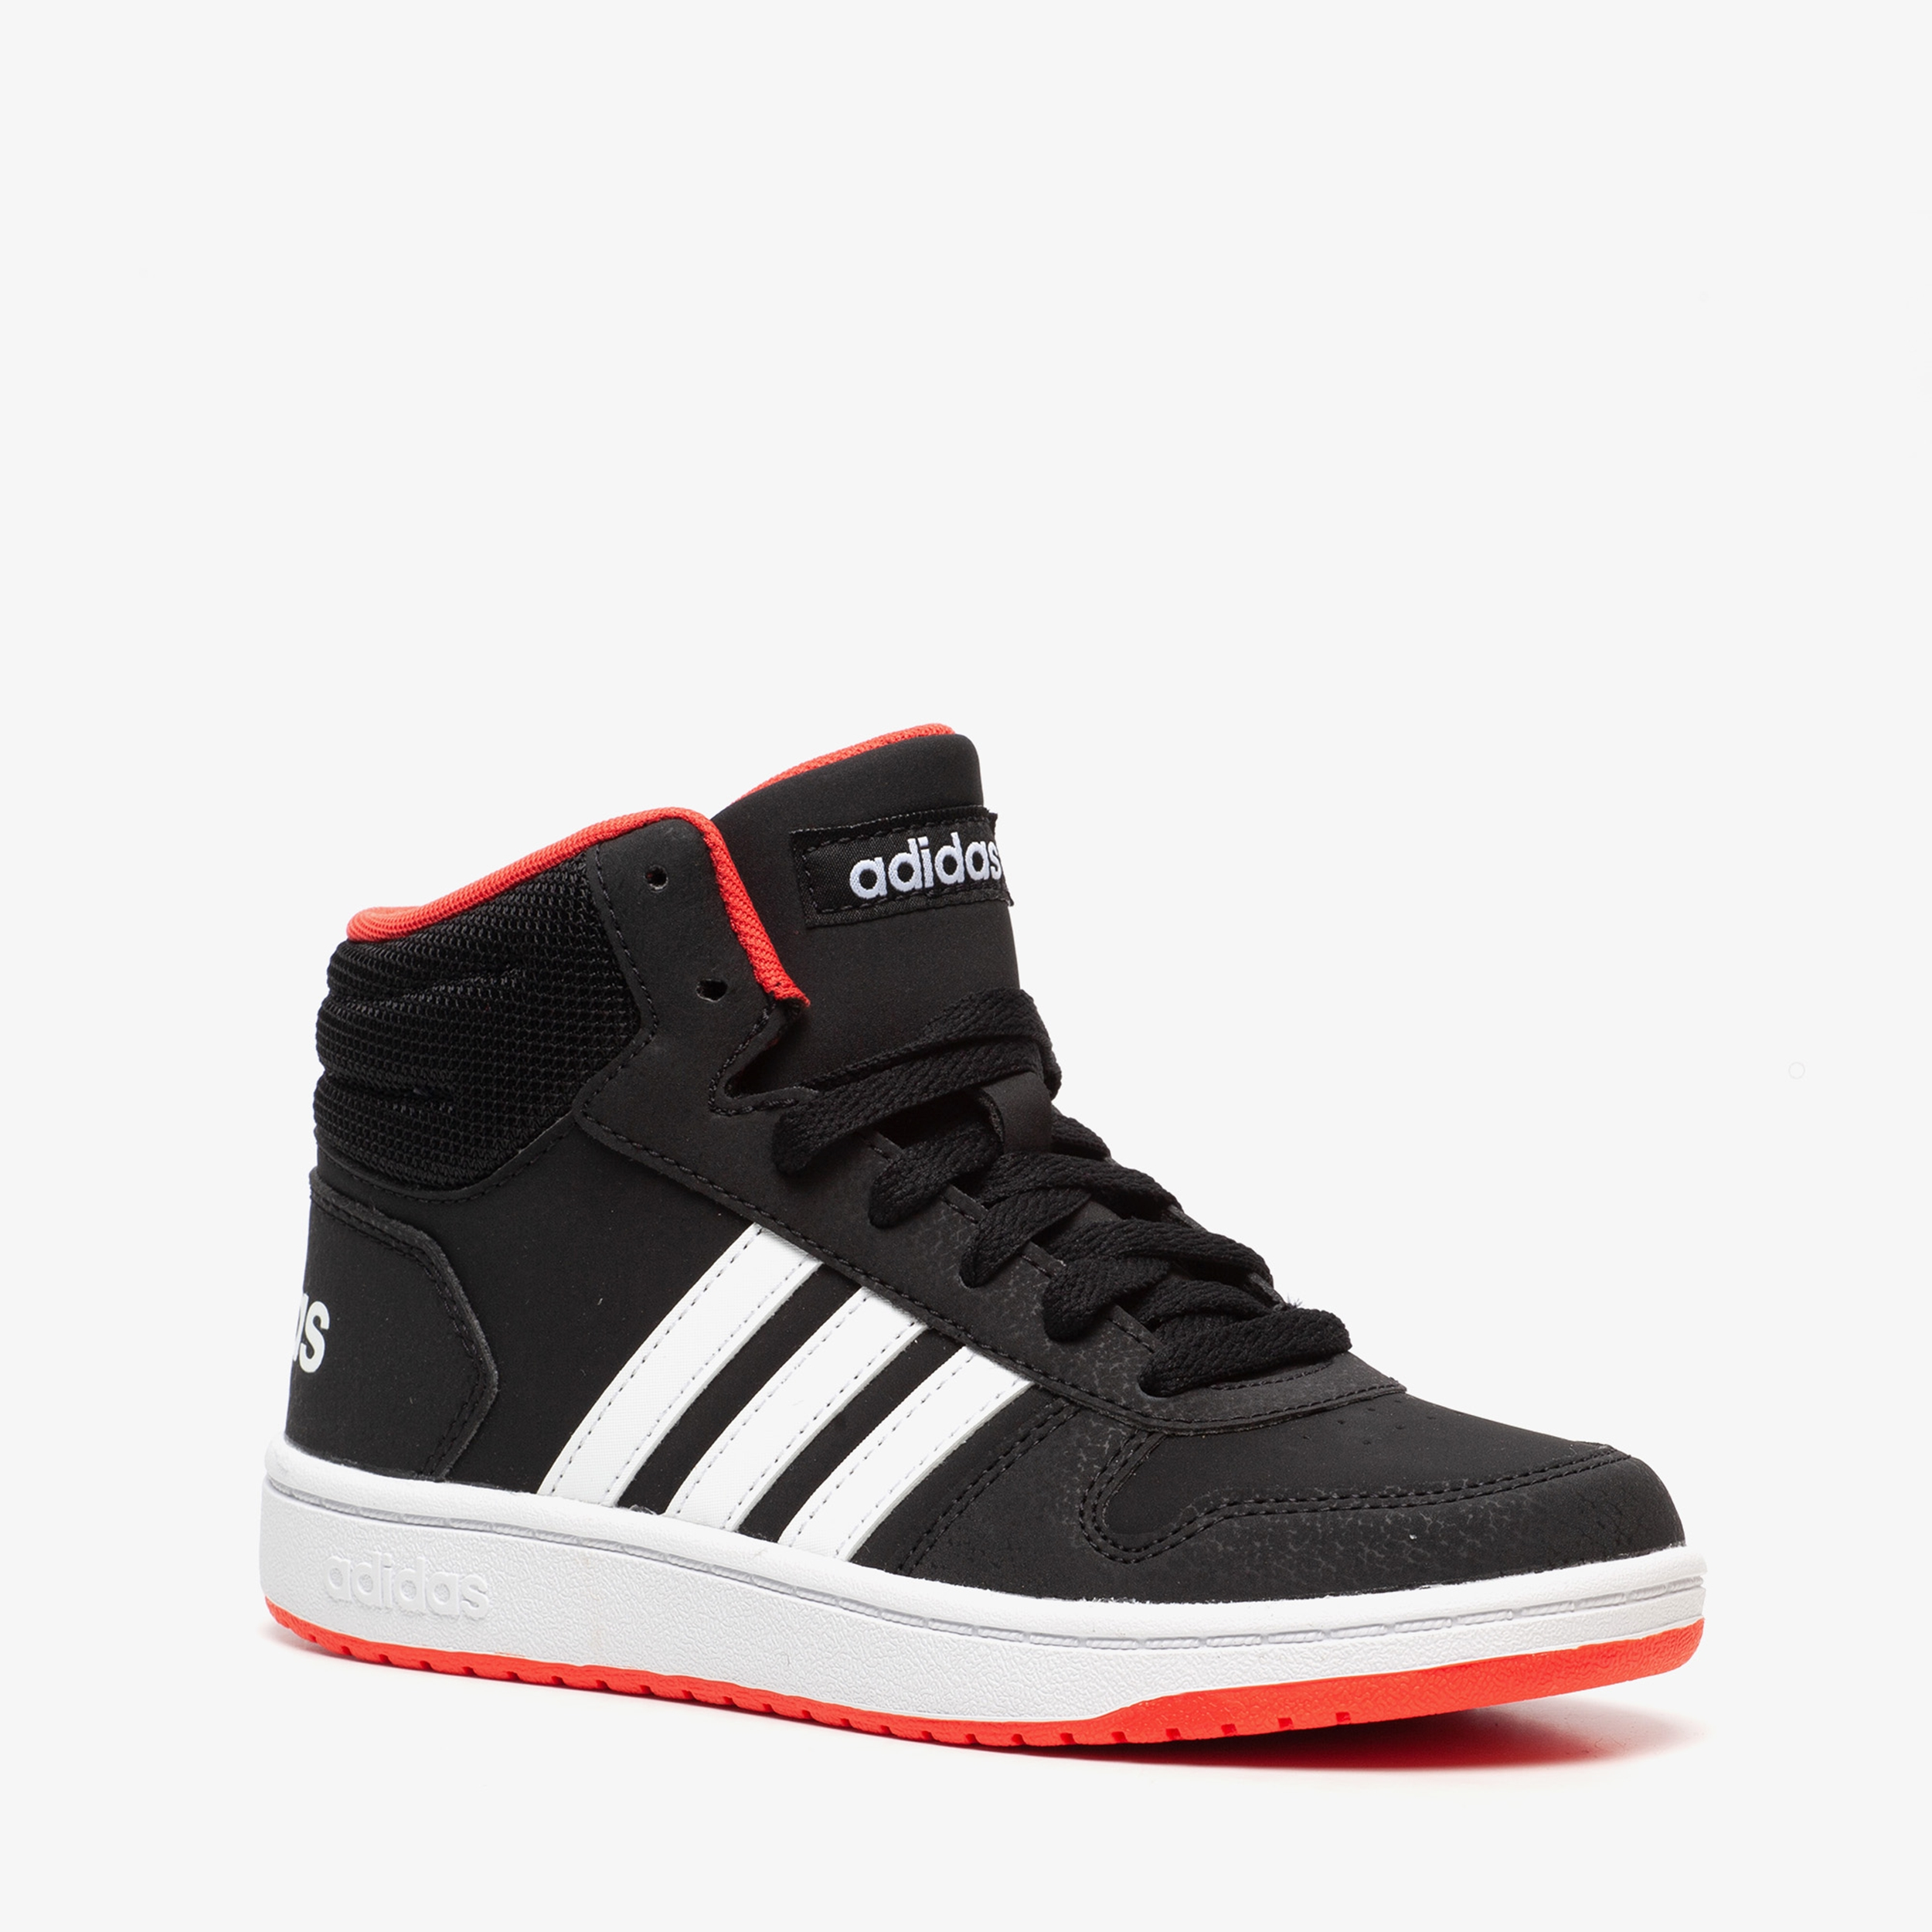 Adidas Hoops Mid 2.0 kinder sneakers | Scapino.nl